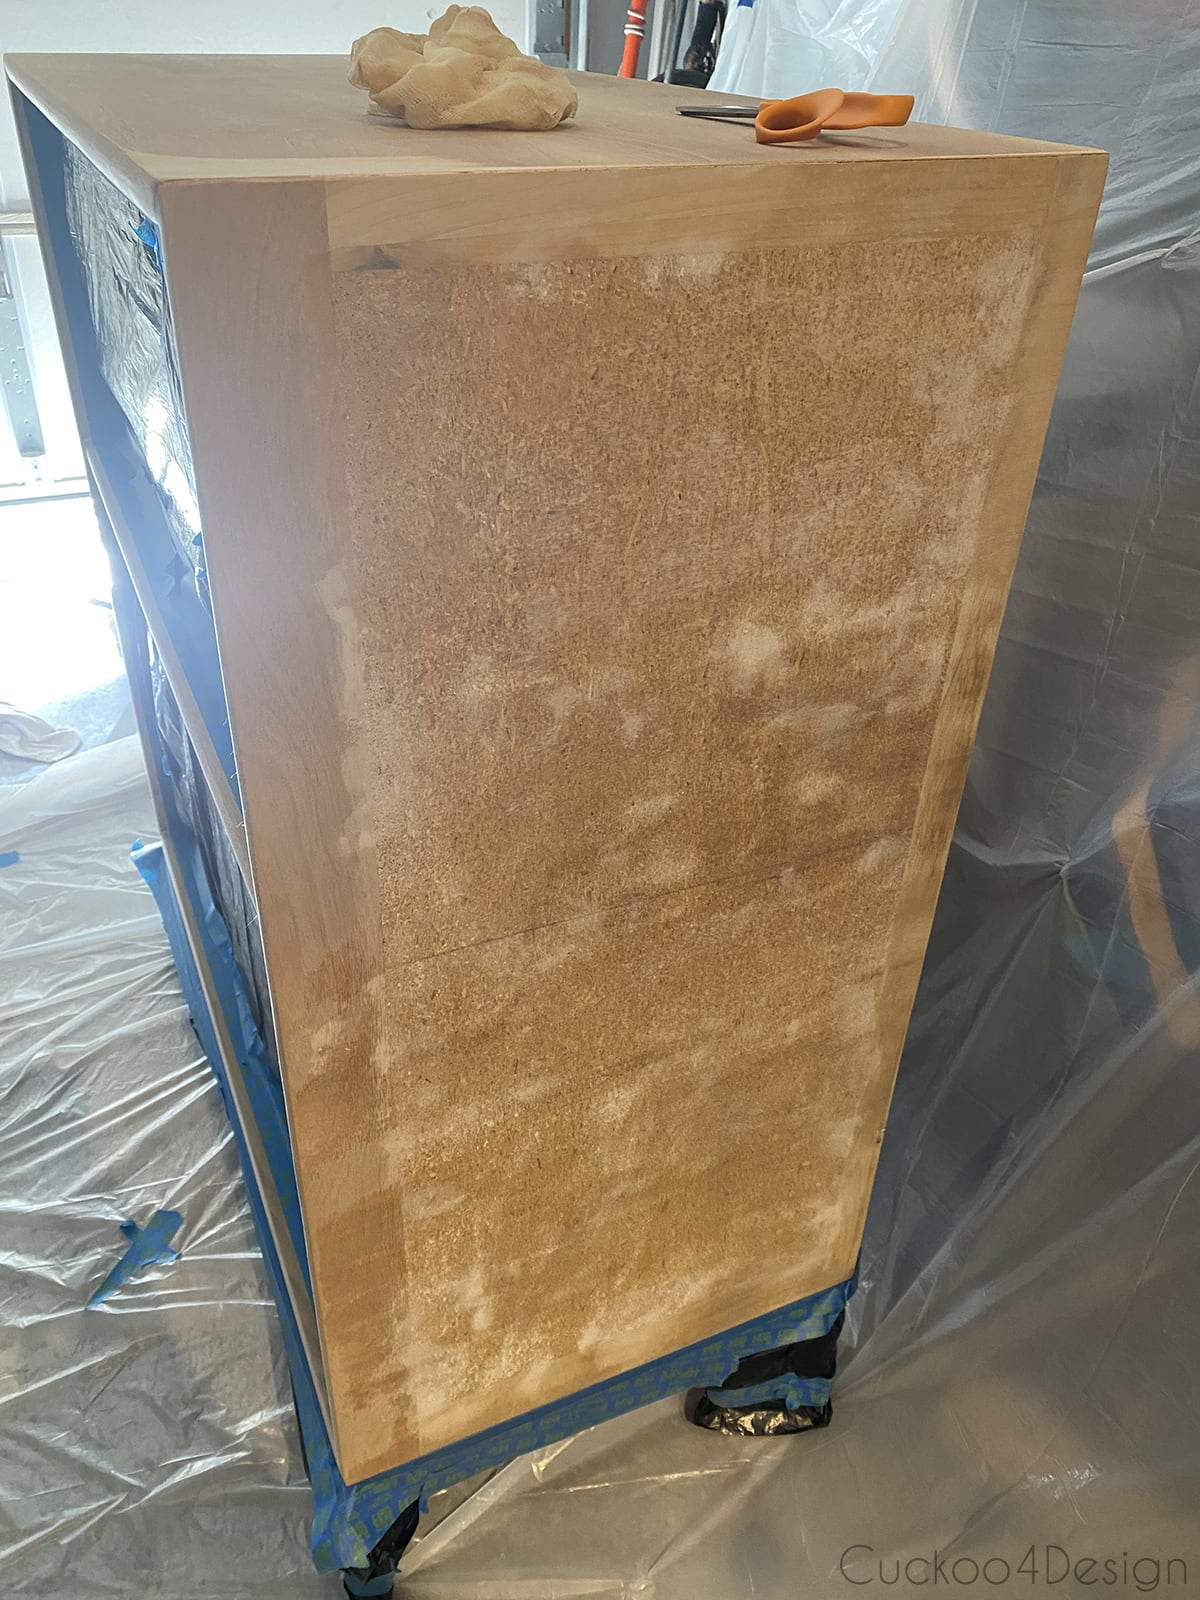 patched particle board before painting